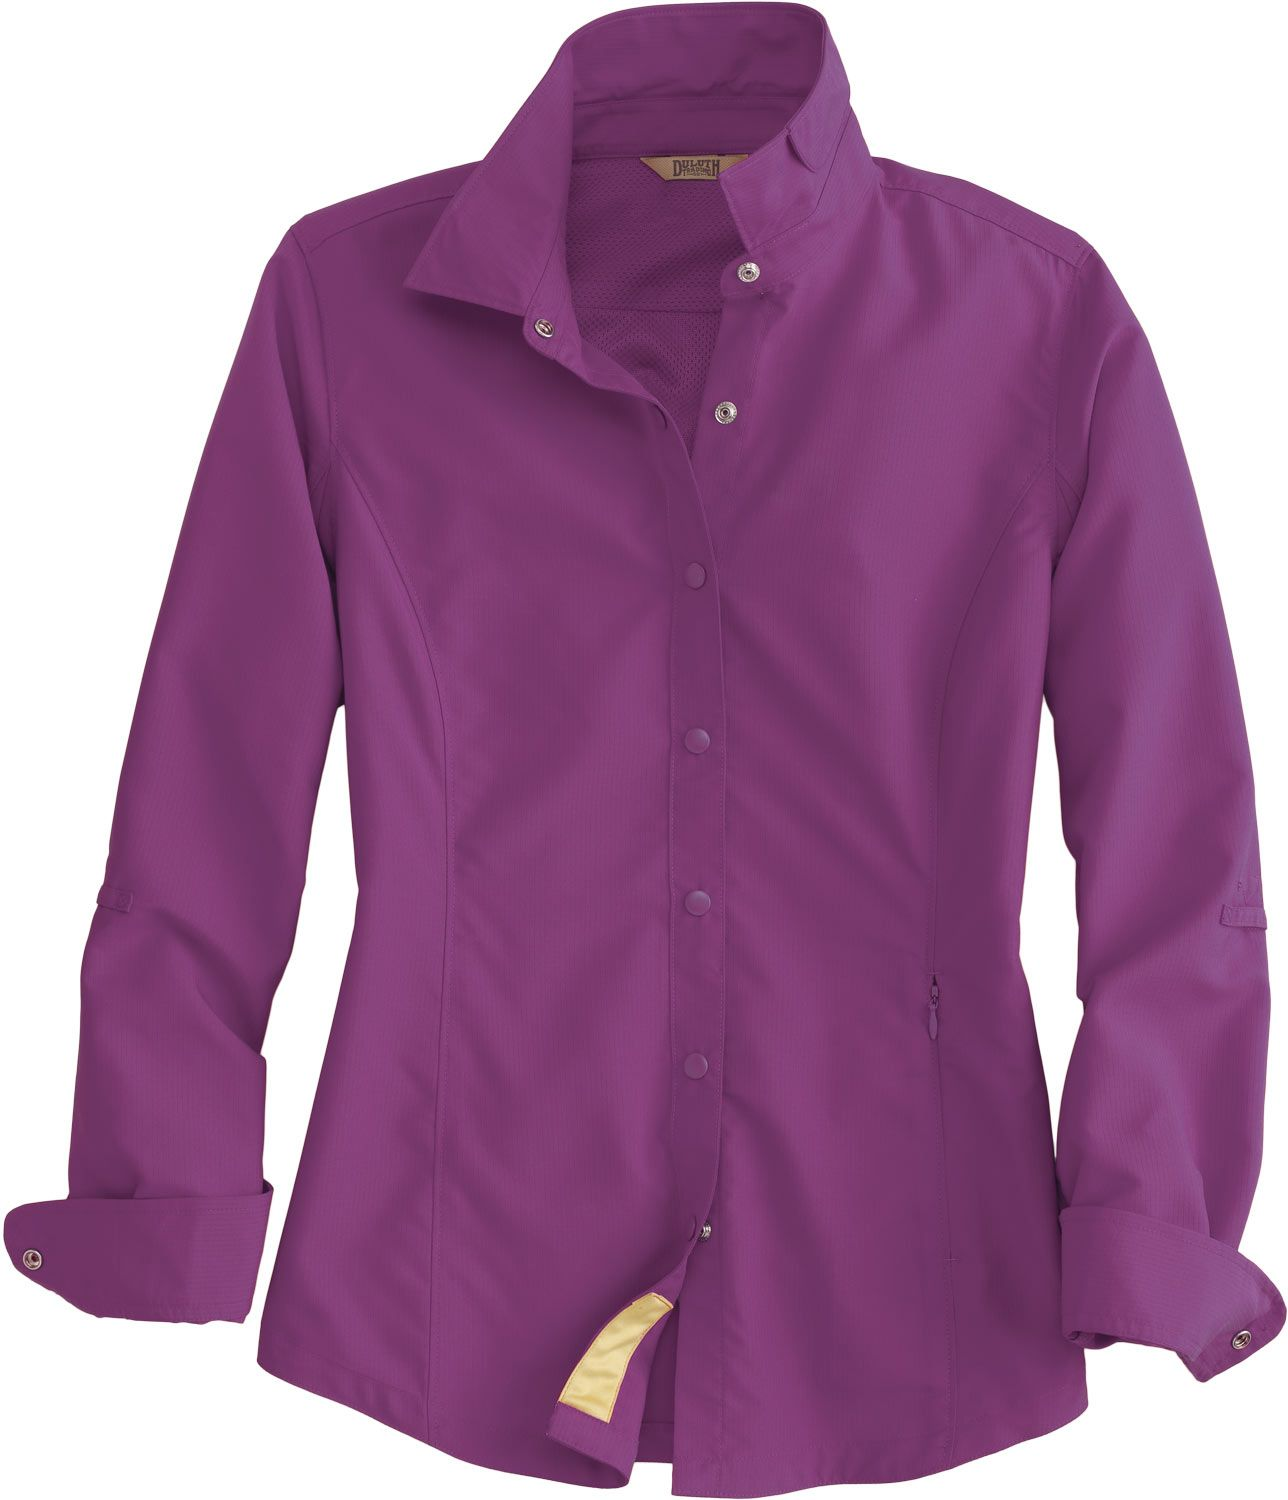 The Women S Coolplus Shirt Is Made Of Cooling Polyester With Upf